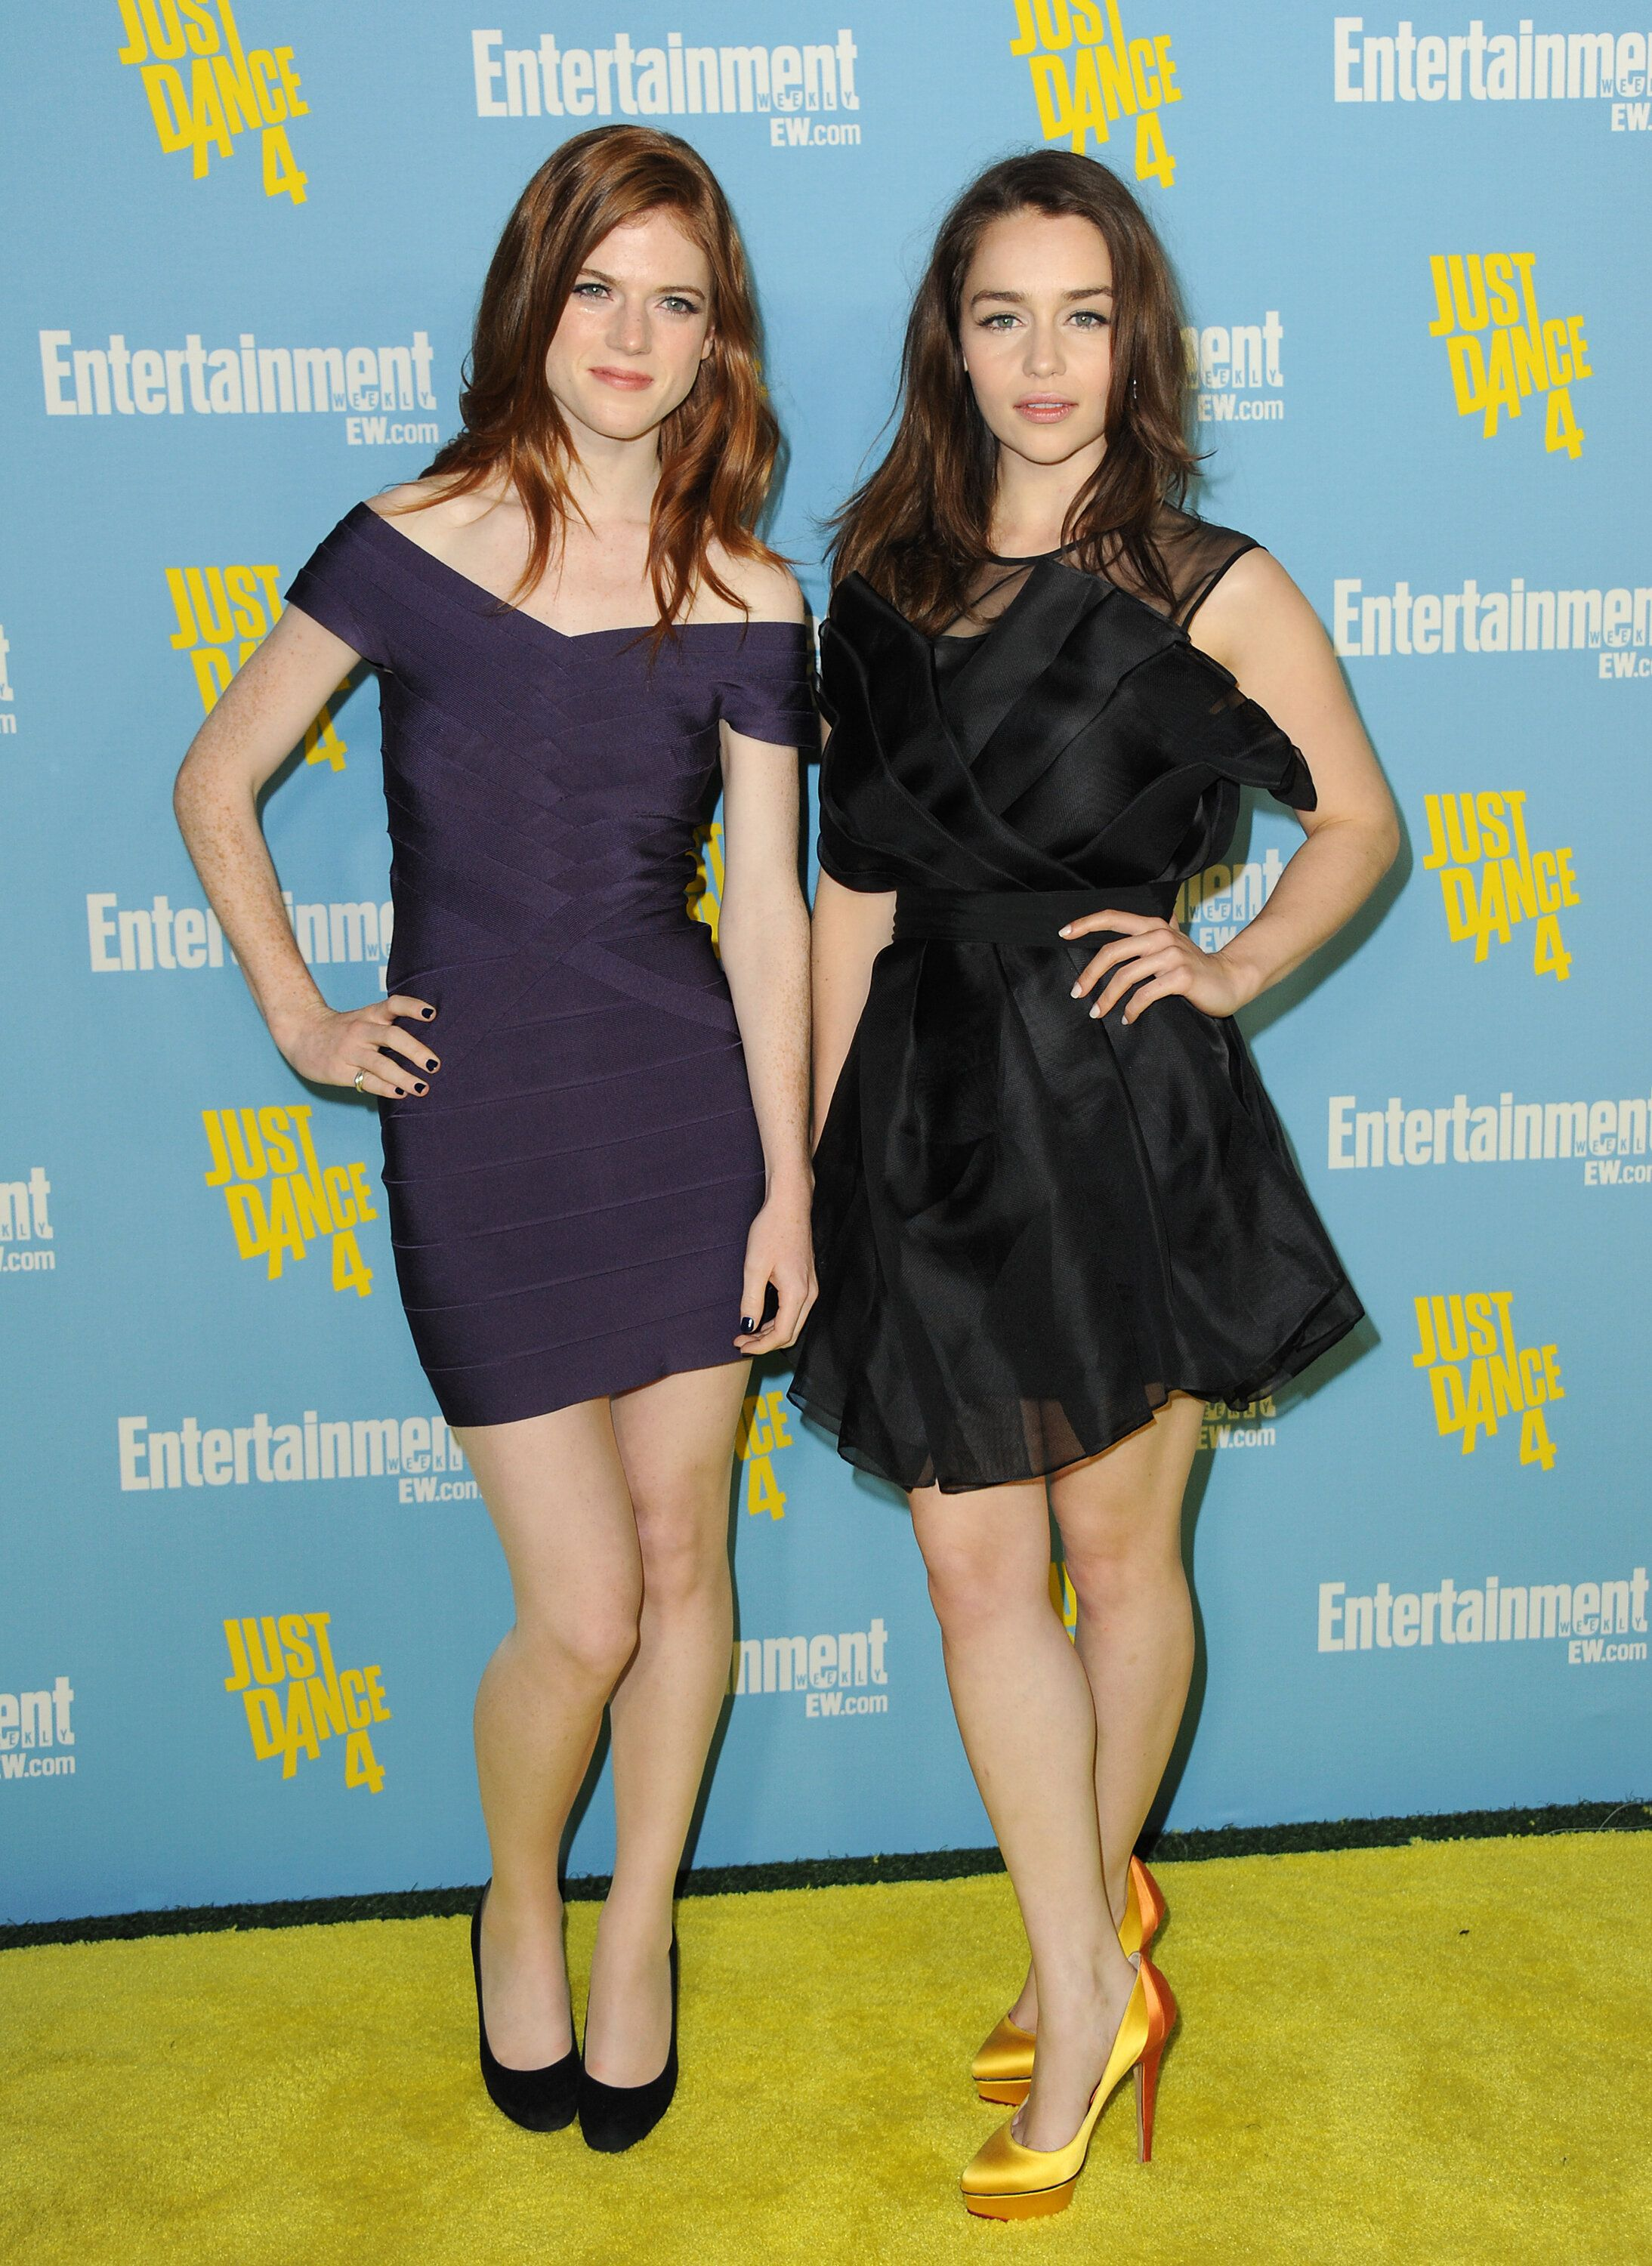 """Game of Thrones"" costars Rose Leslie, left, and Emilia Clarke, right, pictured in 2012 at Comic-Con in San Diego."